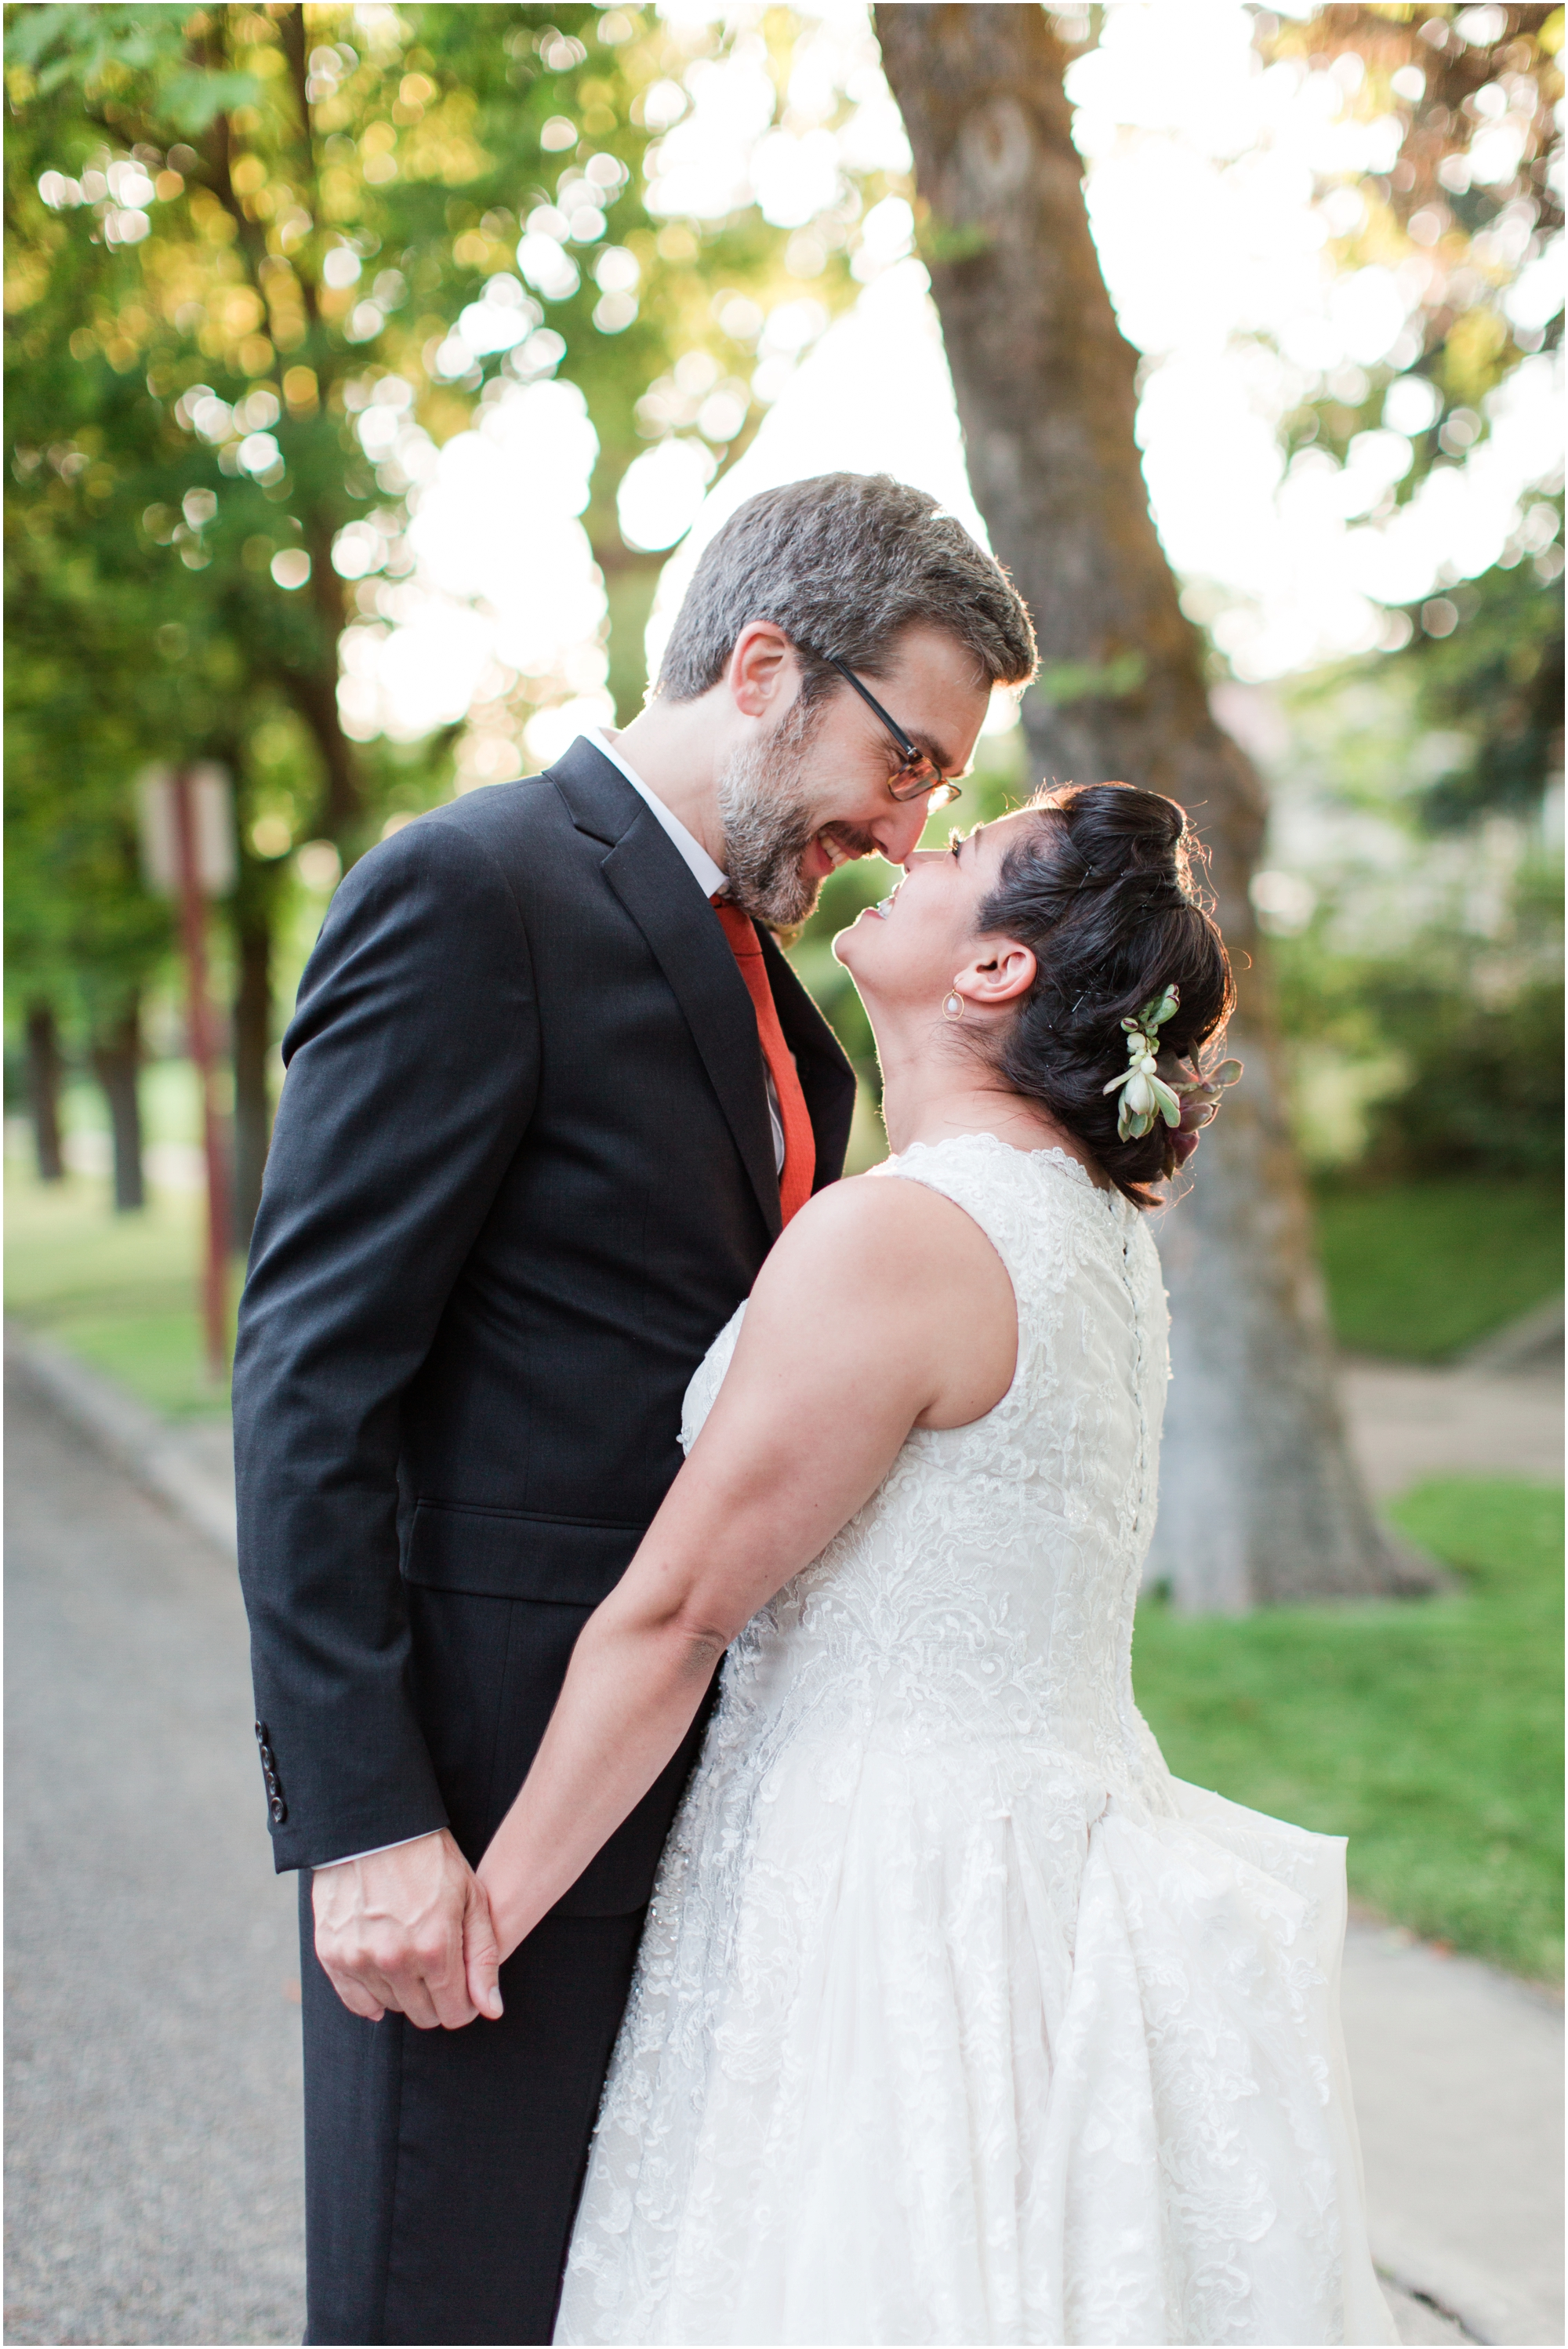 Garden wedding in Ellensburg, WA. Photos by Briana Calderon Photography based in the greater Seattle-Tacoma Area._1359.jpg